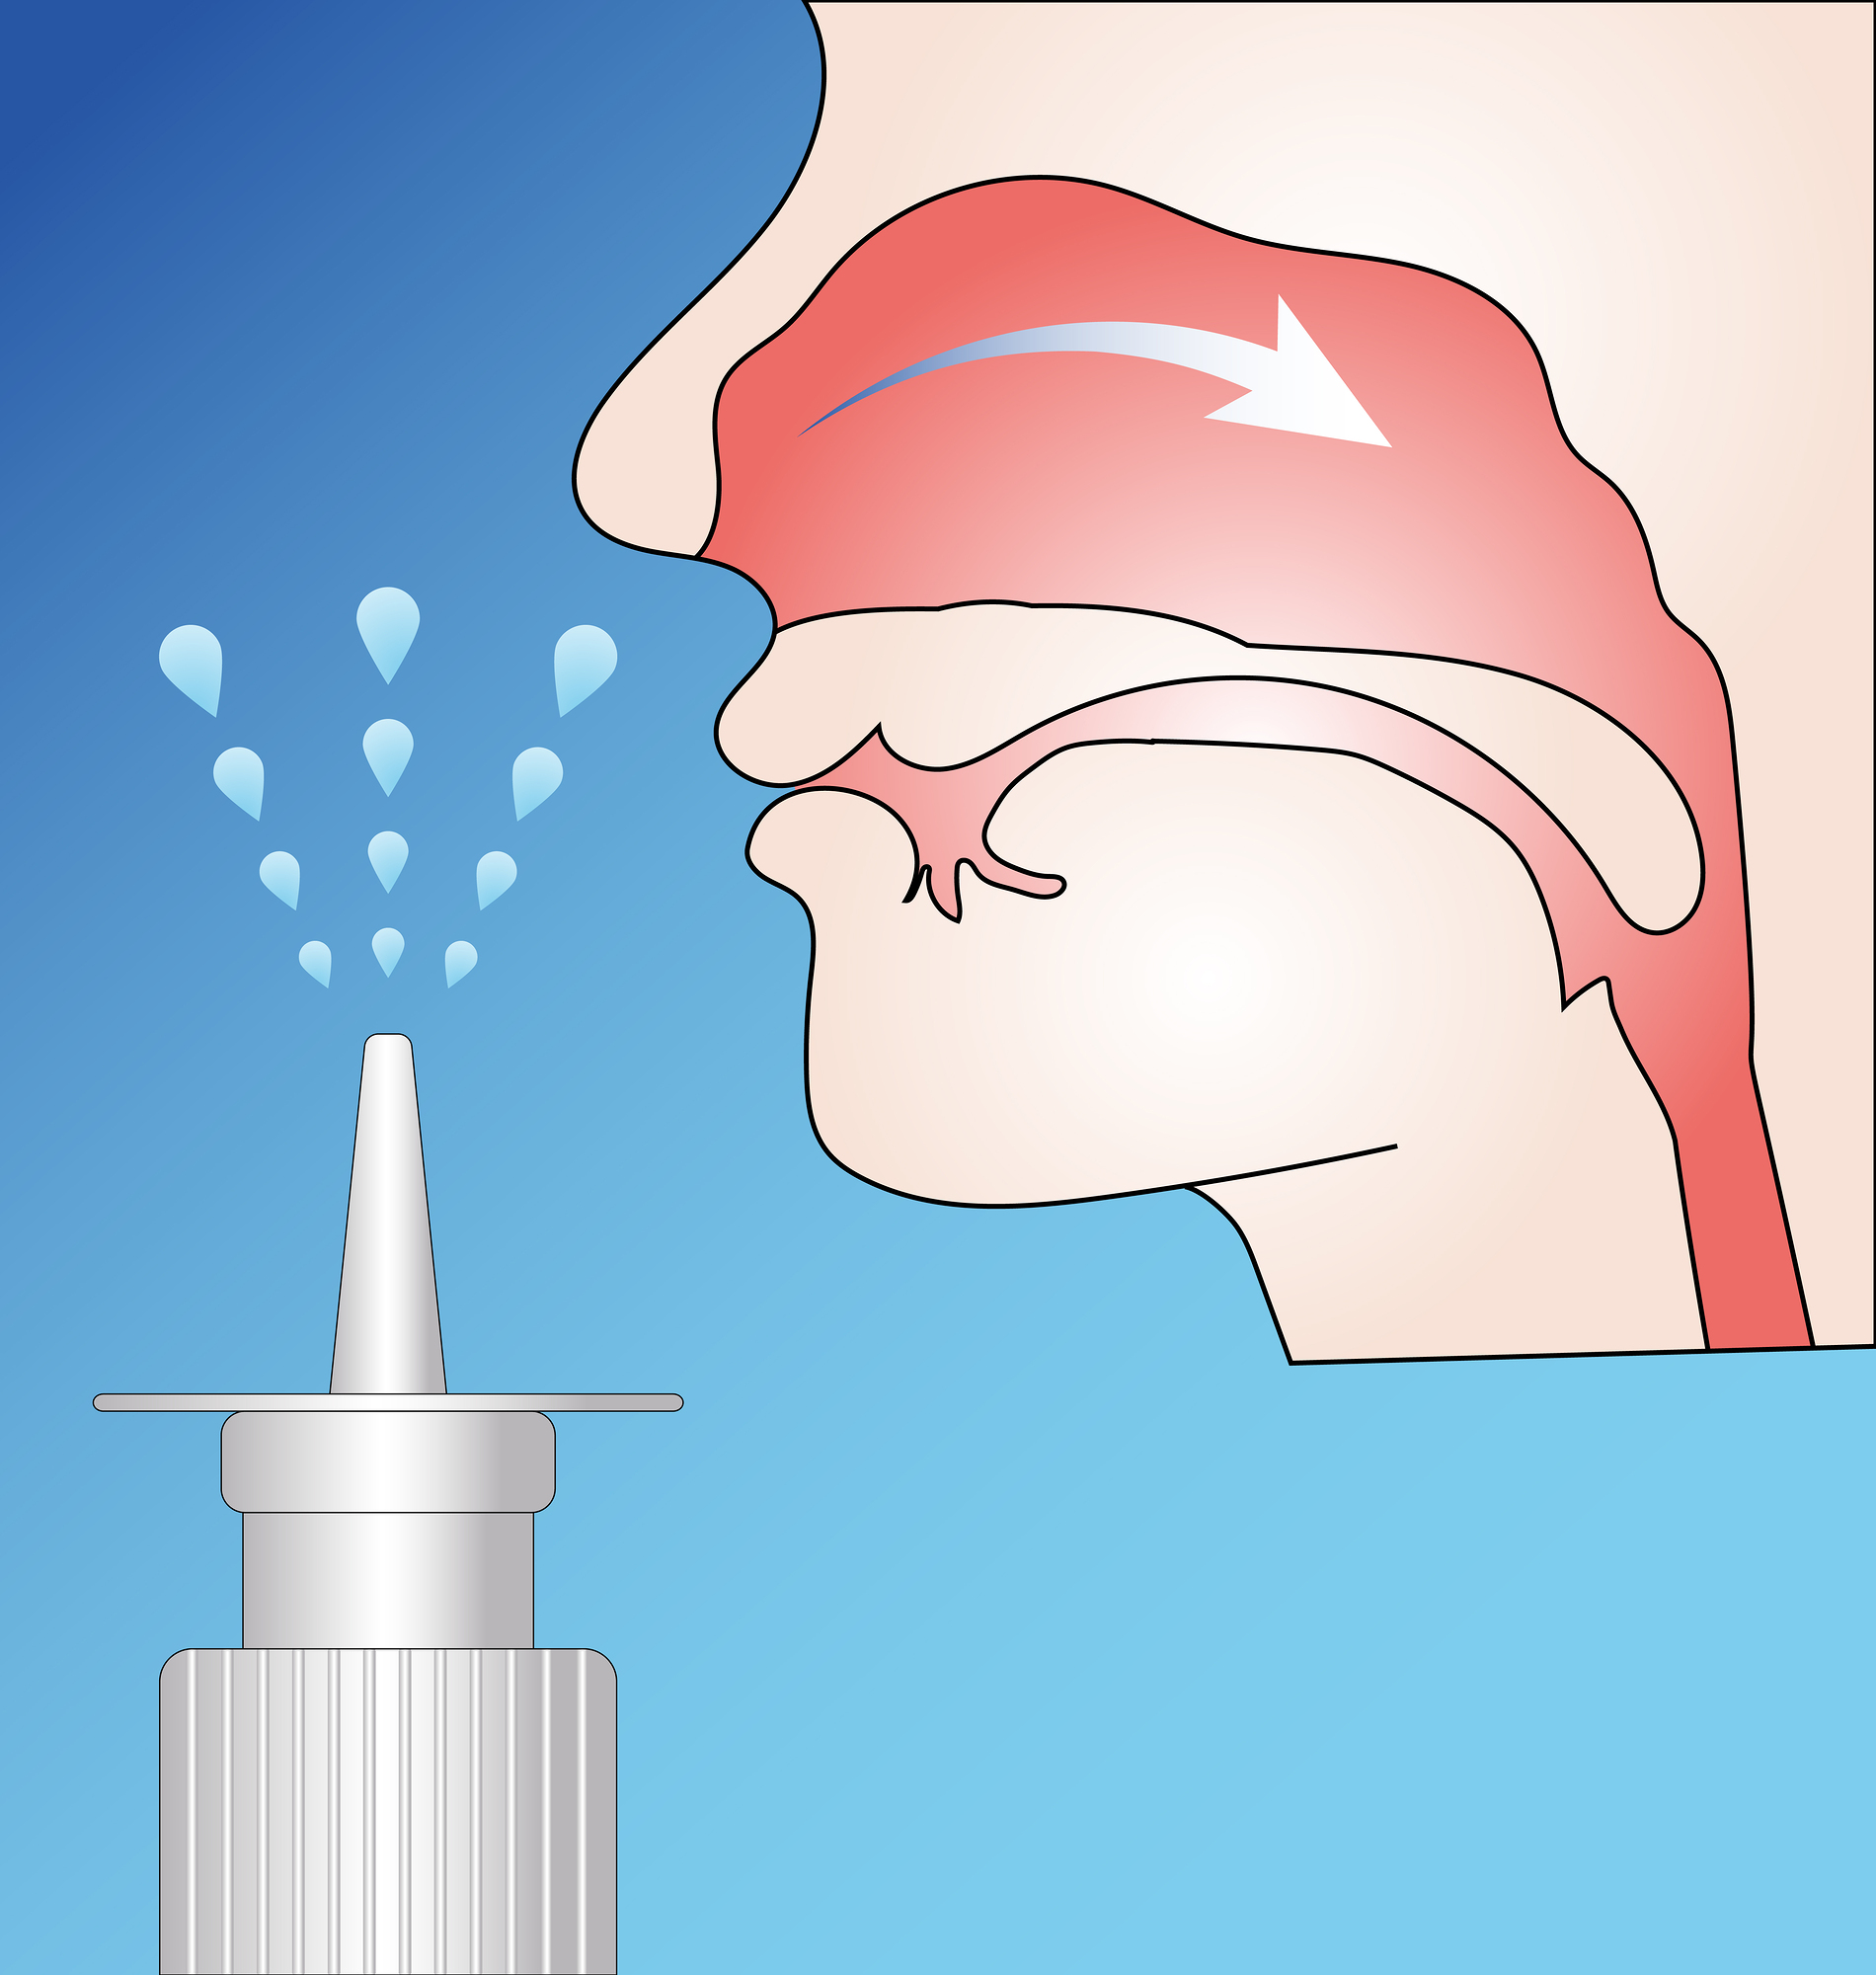 plastic nasal sprayers